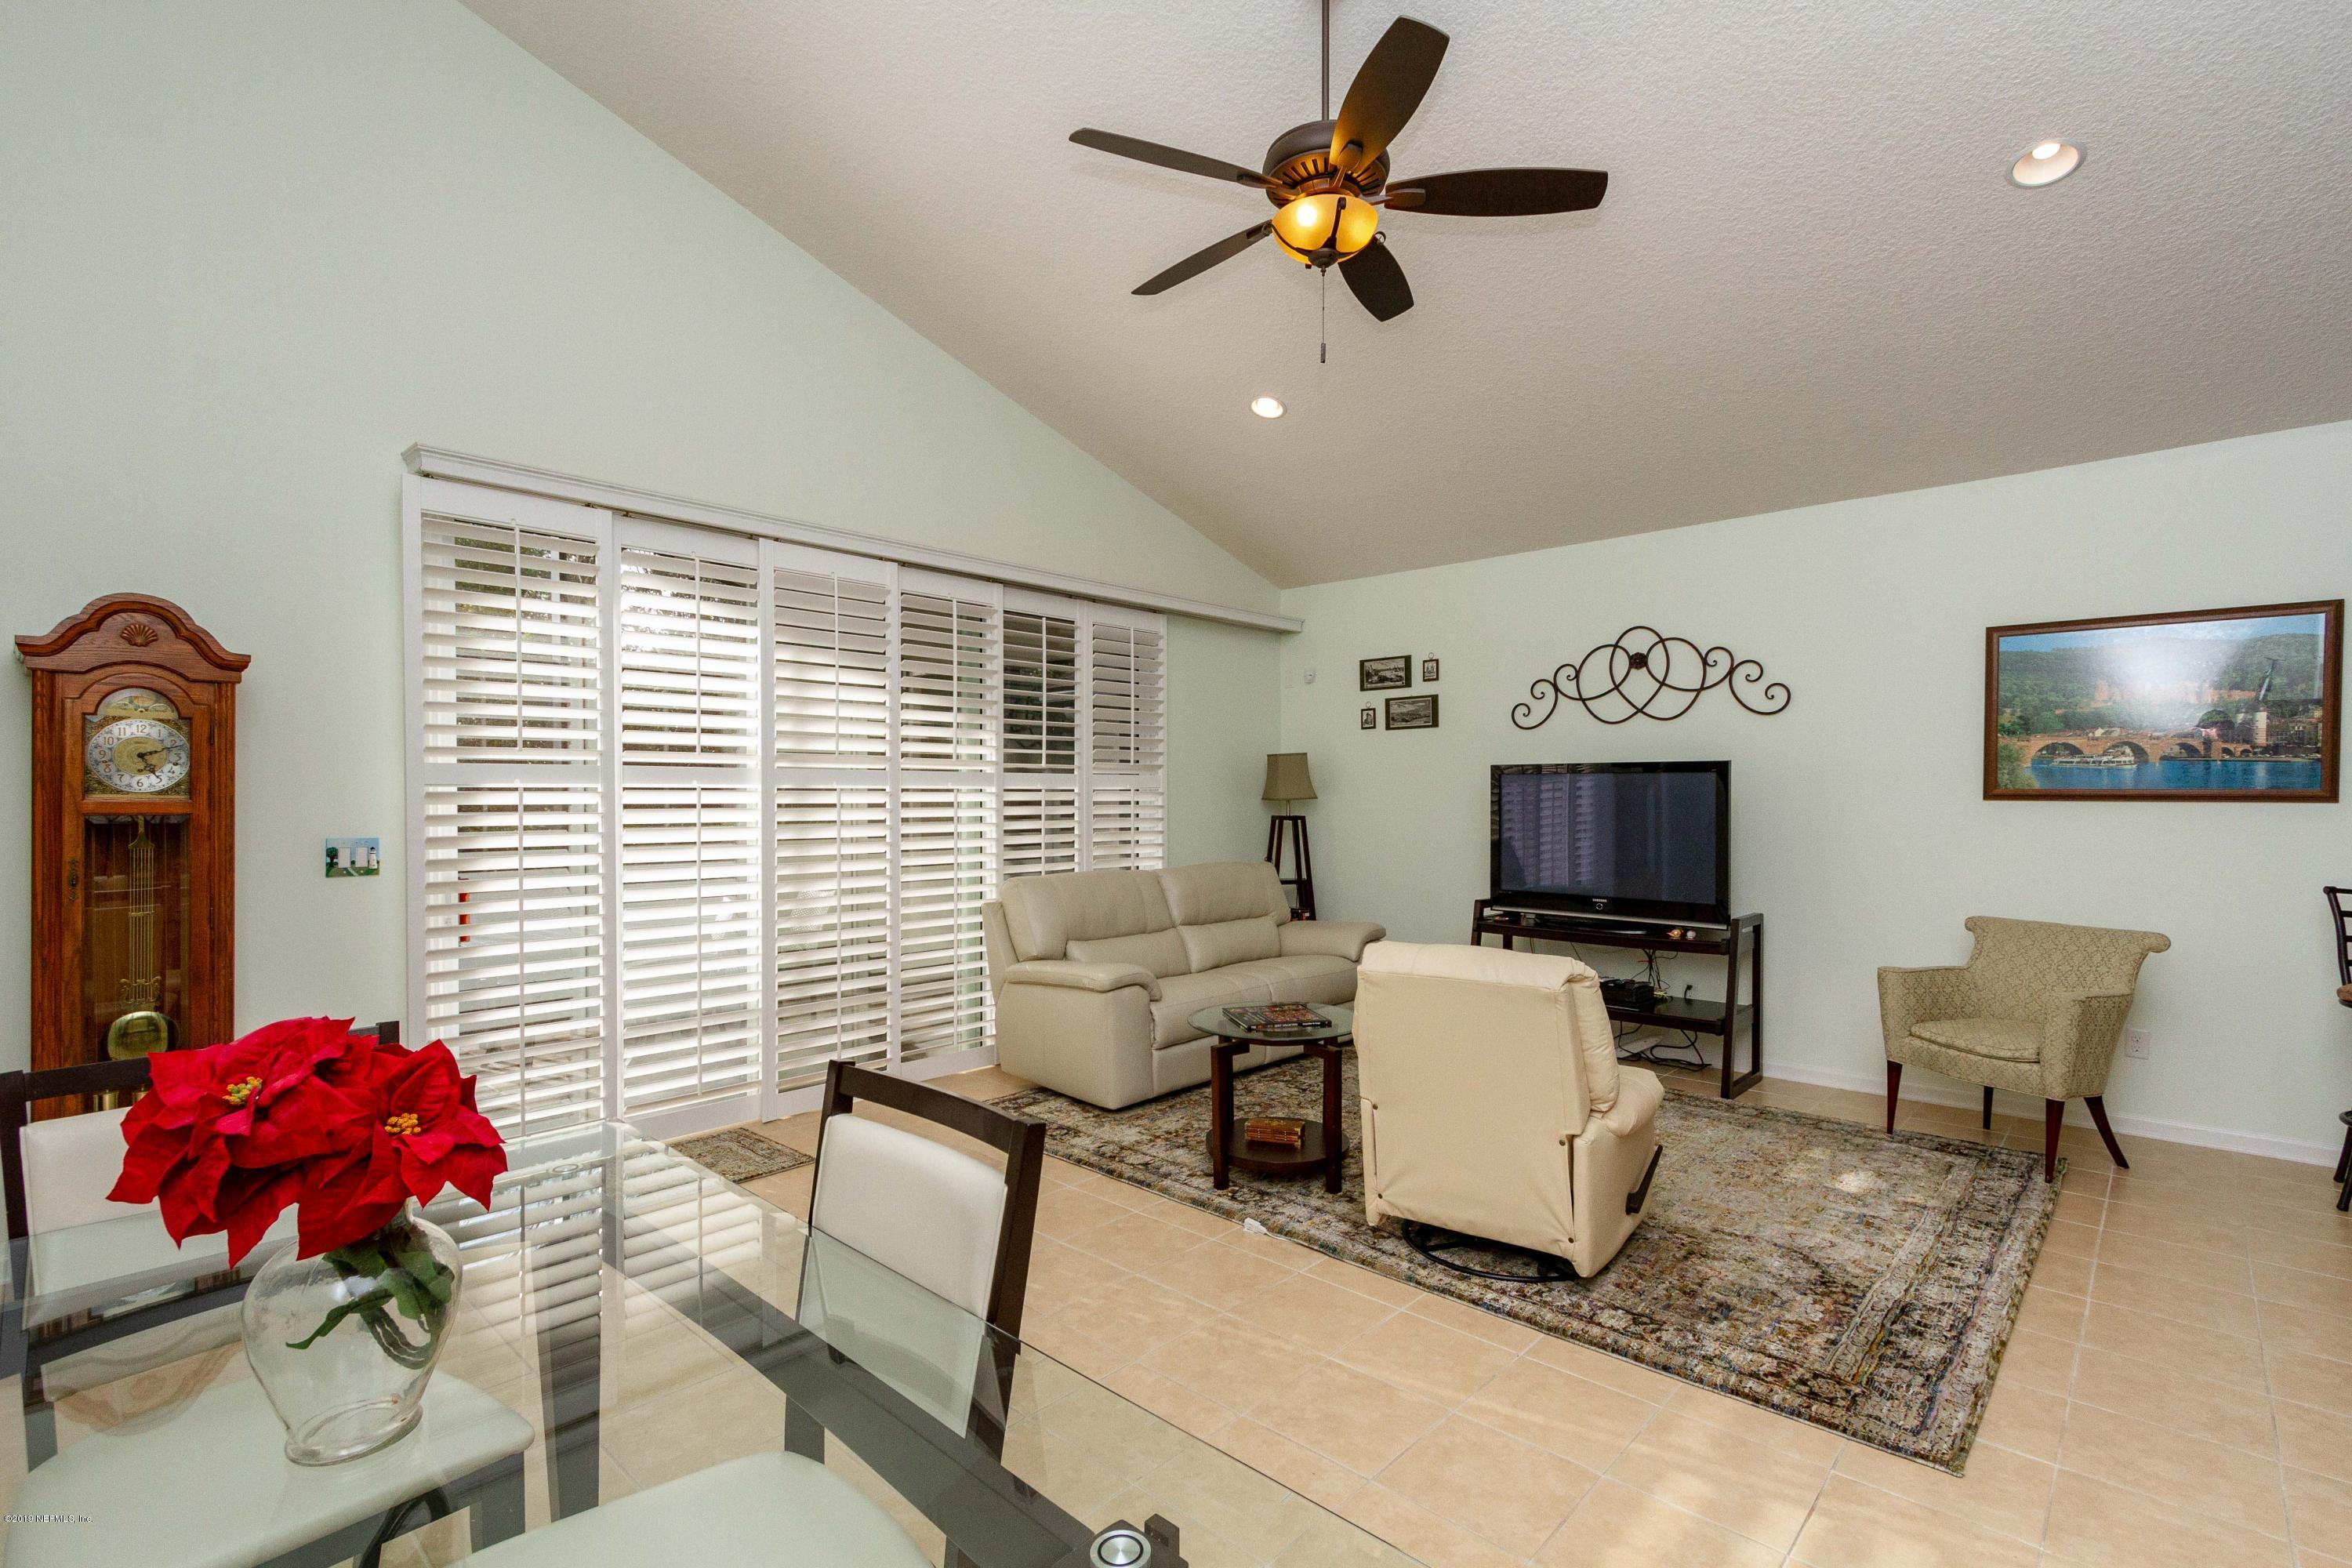 829 COPPERHEAD, ST AUGUSTINE, FLORIDA 32092, 3 Bedrooms Bedrooms, ,2 BathroomsBathrooms,Residential - single family,For sale,COPPERHEAD,974874